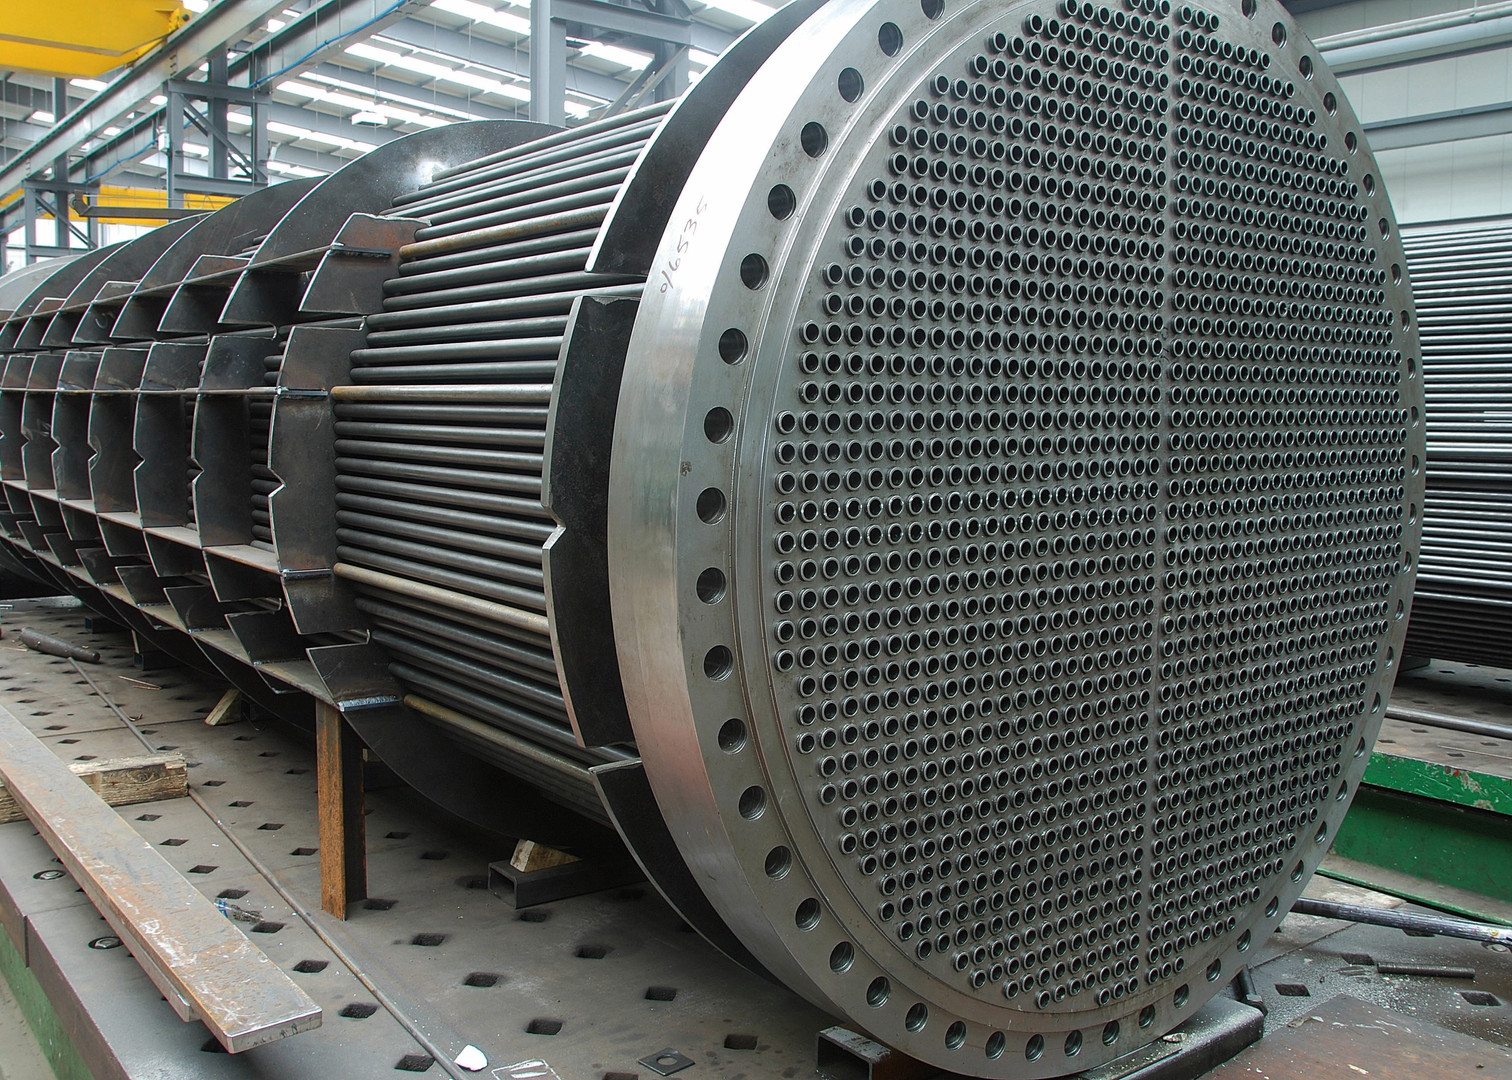 Superheater in factory 2.jpg